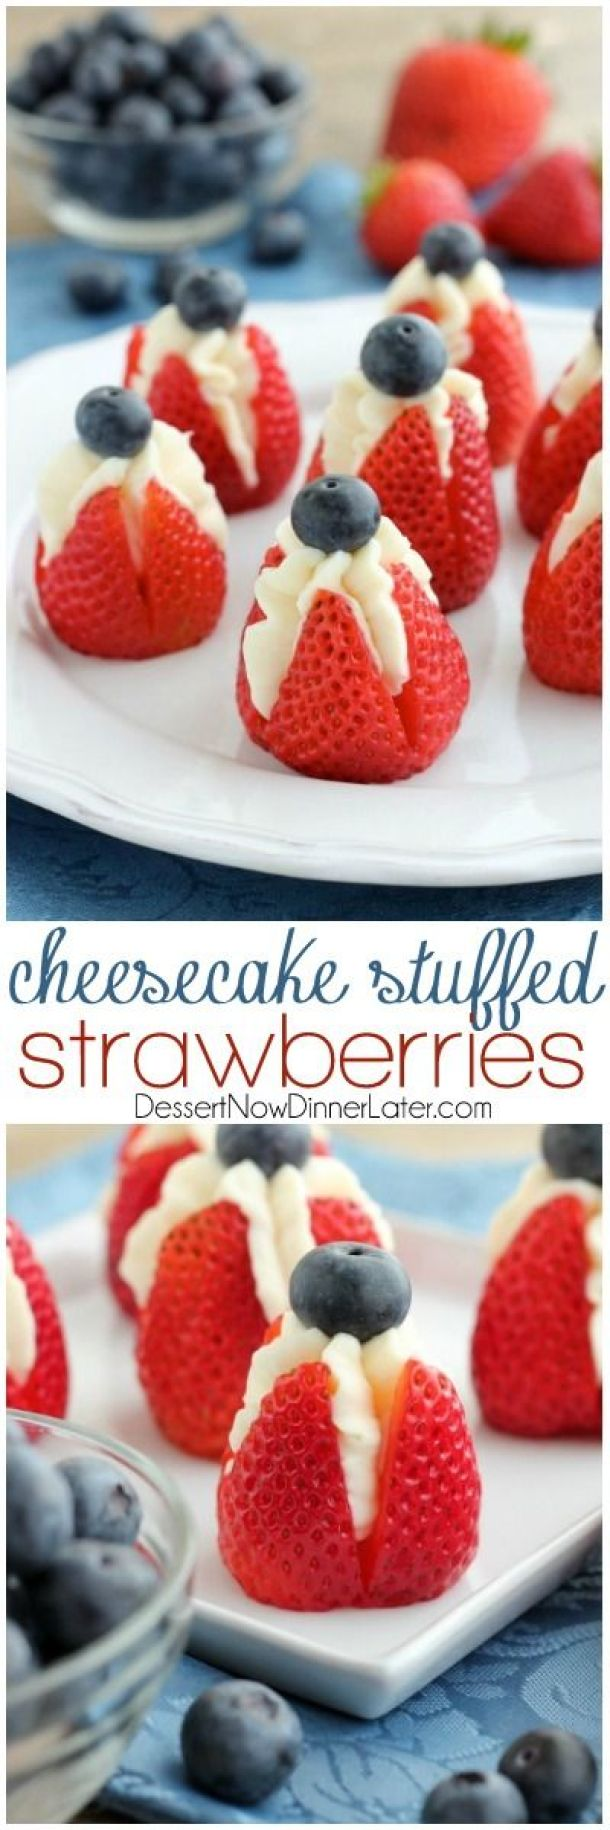 Do it Yourself 4th of July Party - Red White and Blue Cheesecake Stuffed Strawberries Dessert Recipe via Dessert Now Diner Later